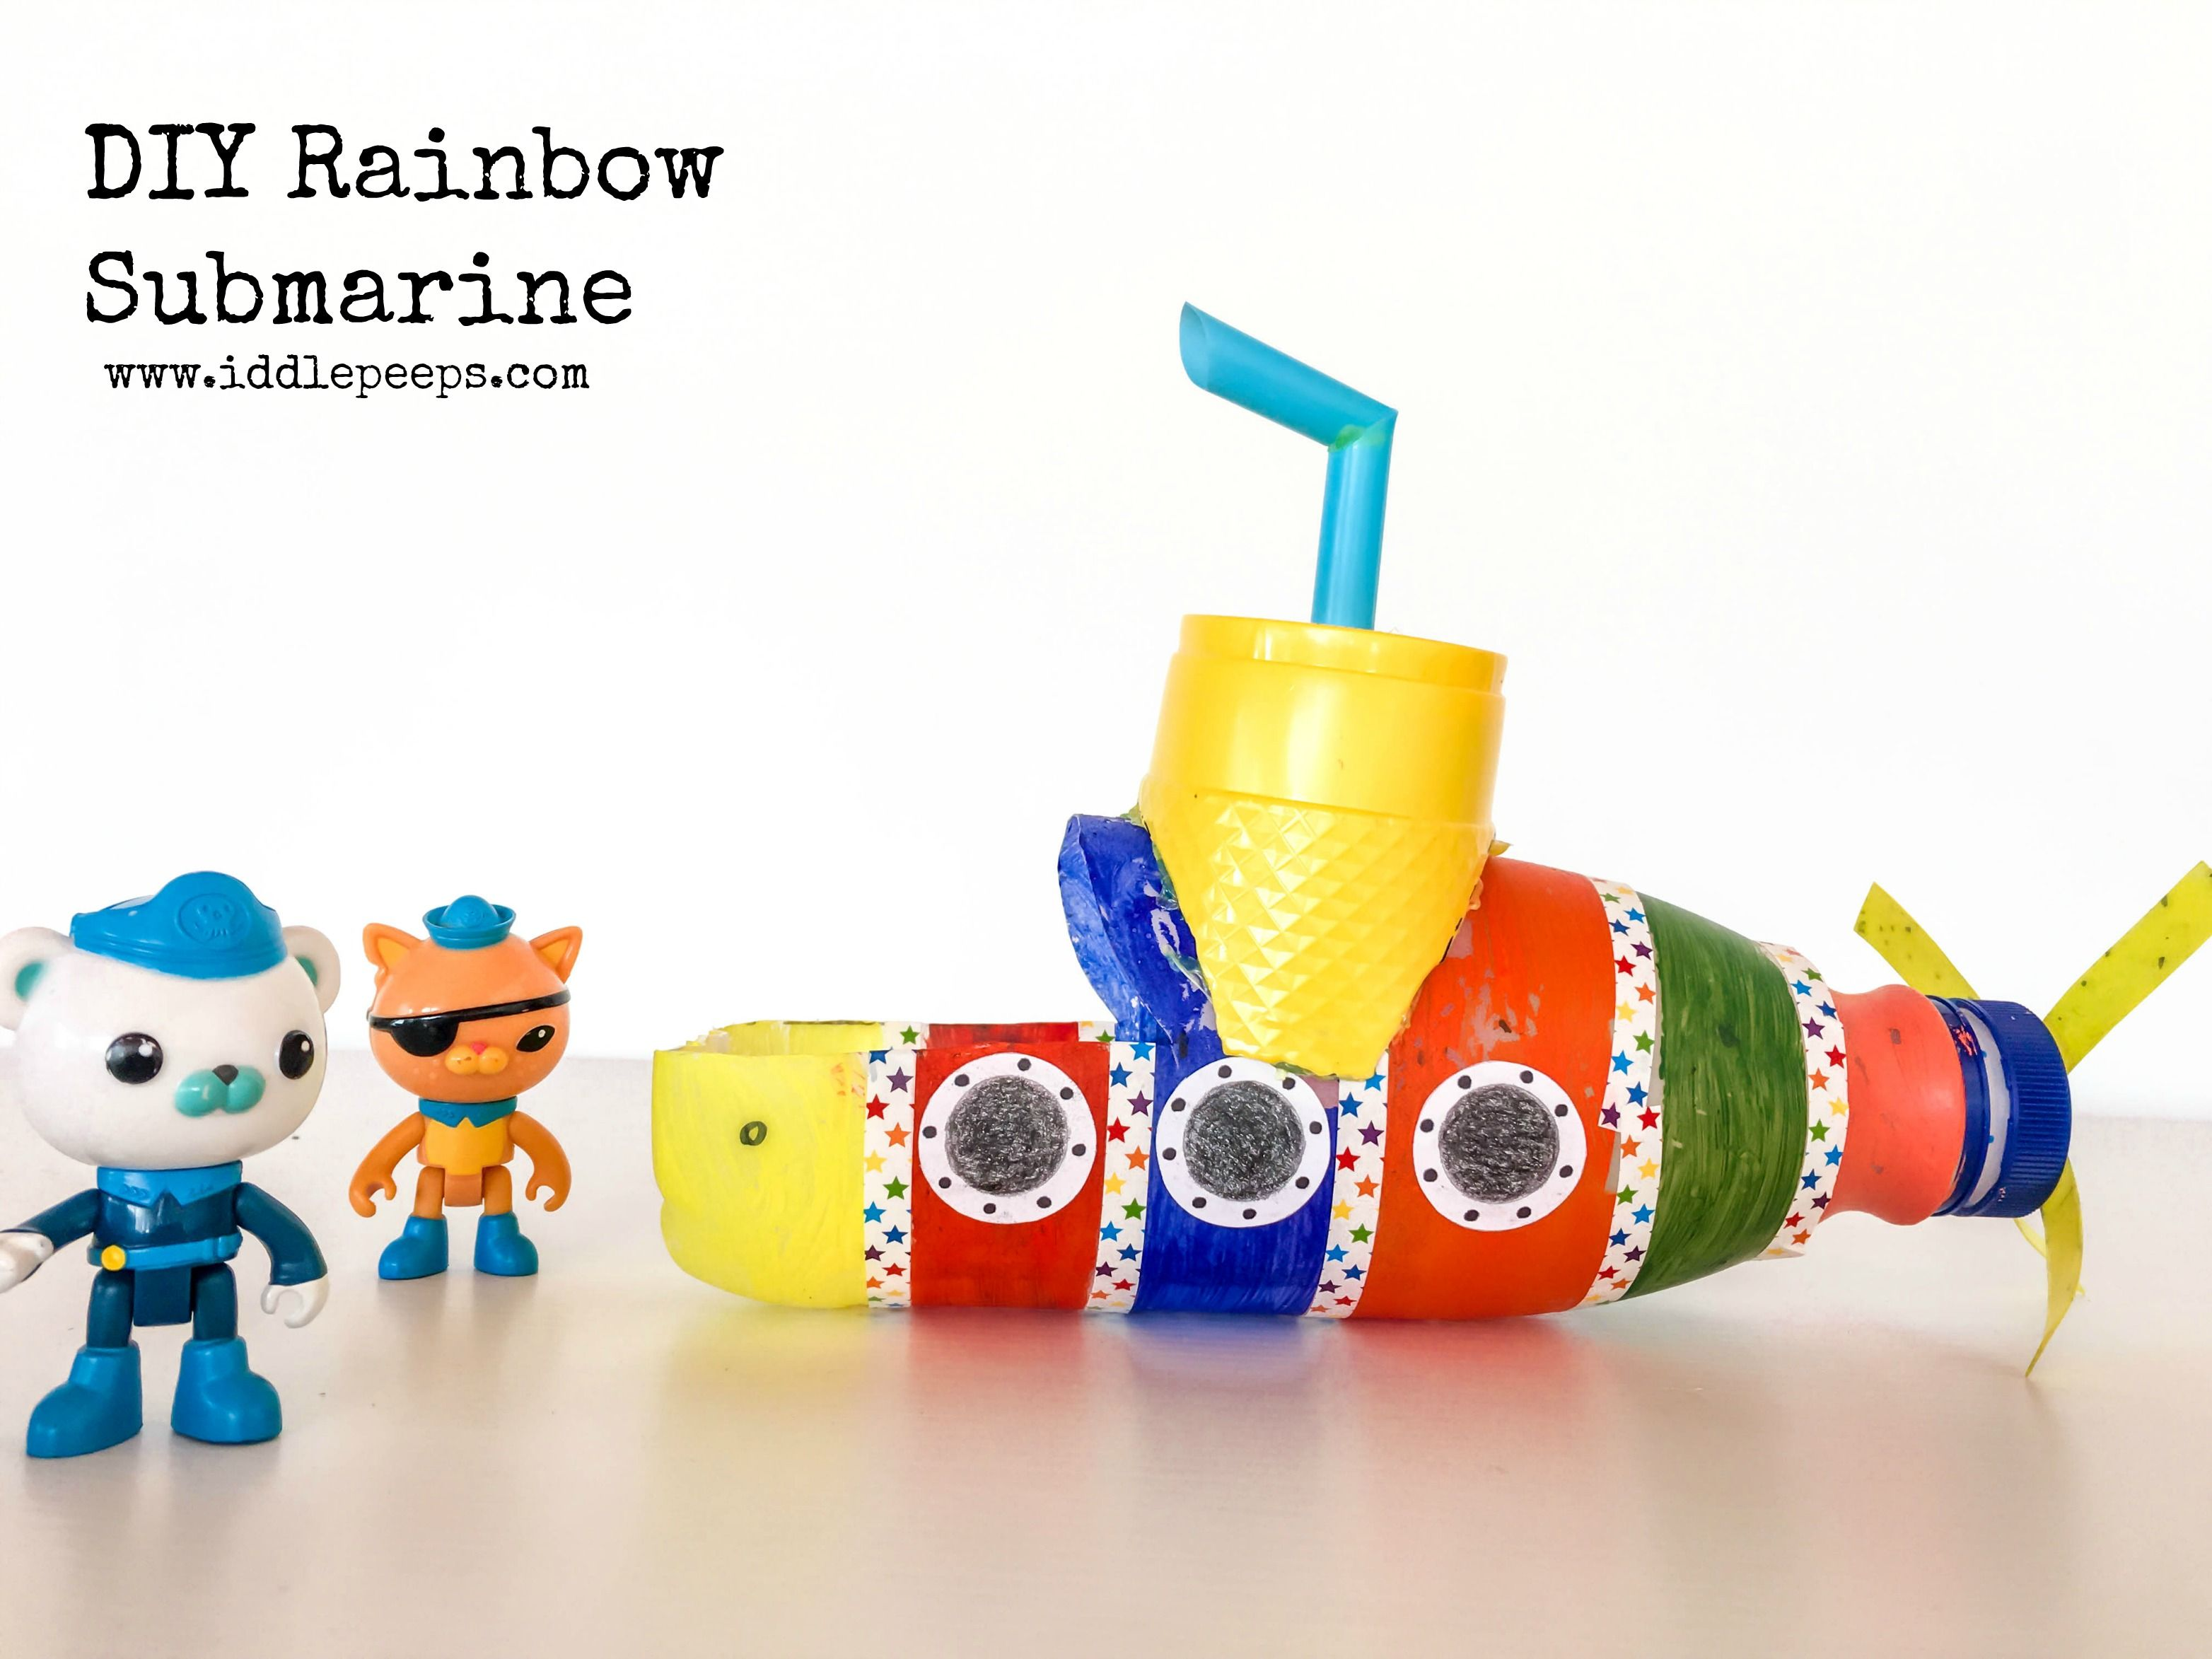 DIY Rainbow Submarine